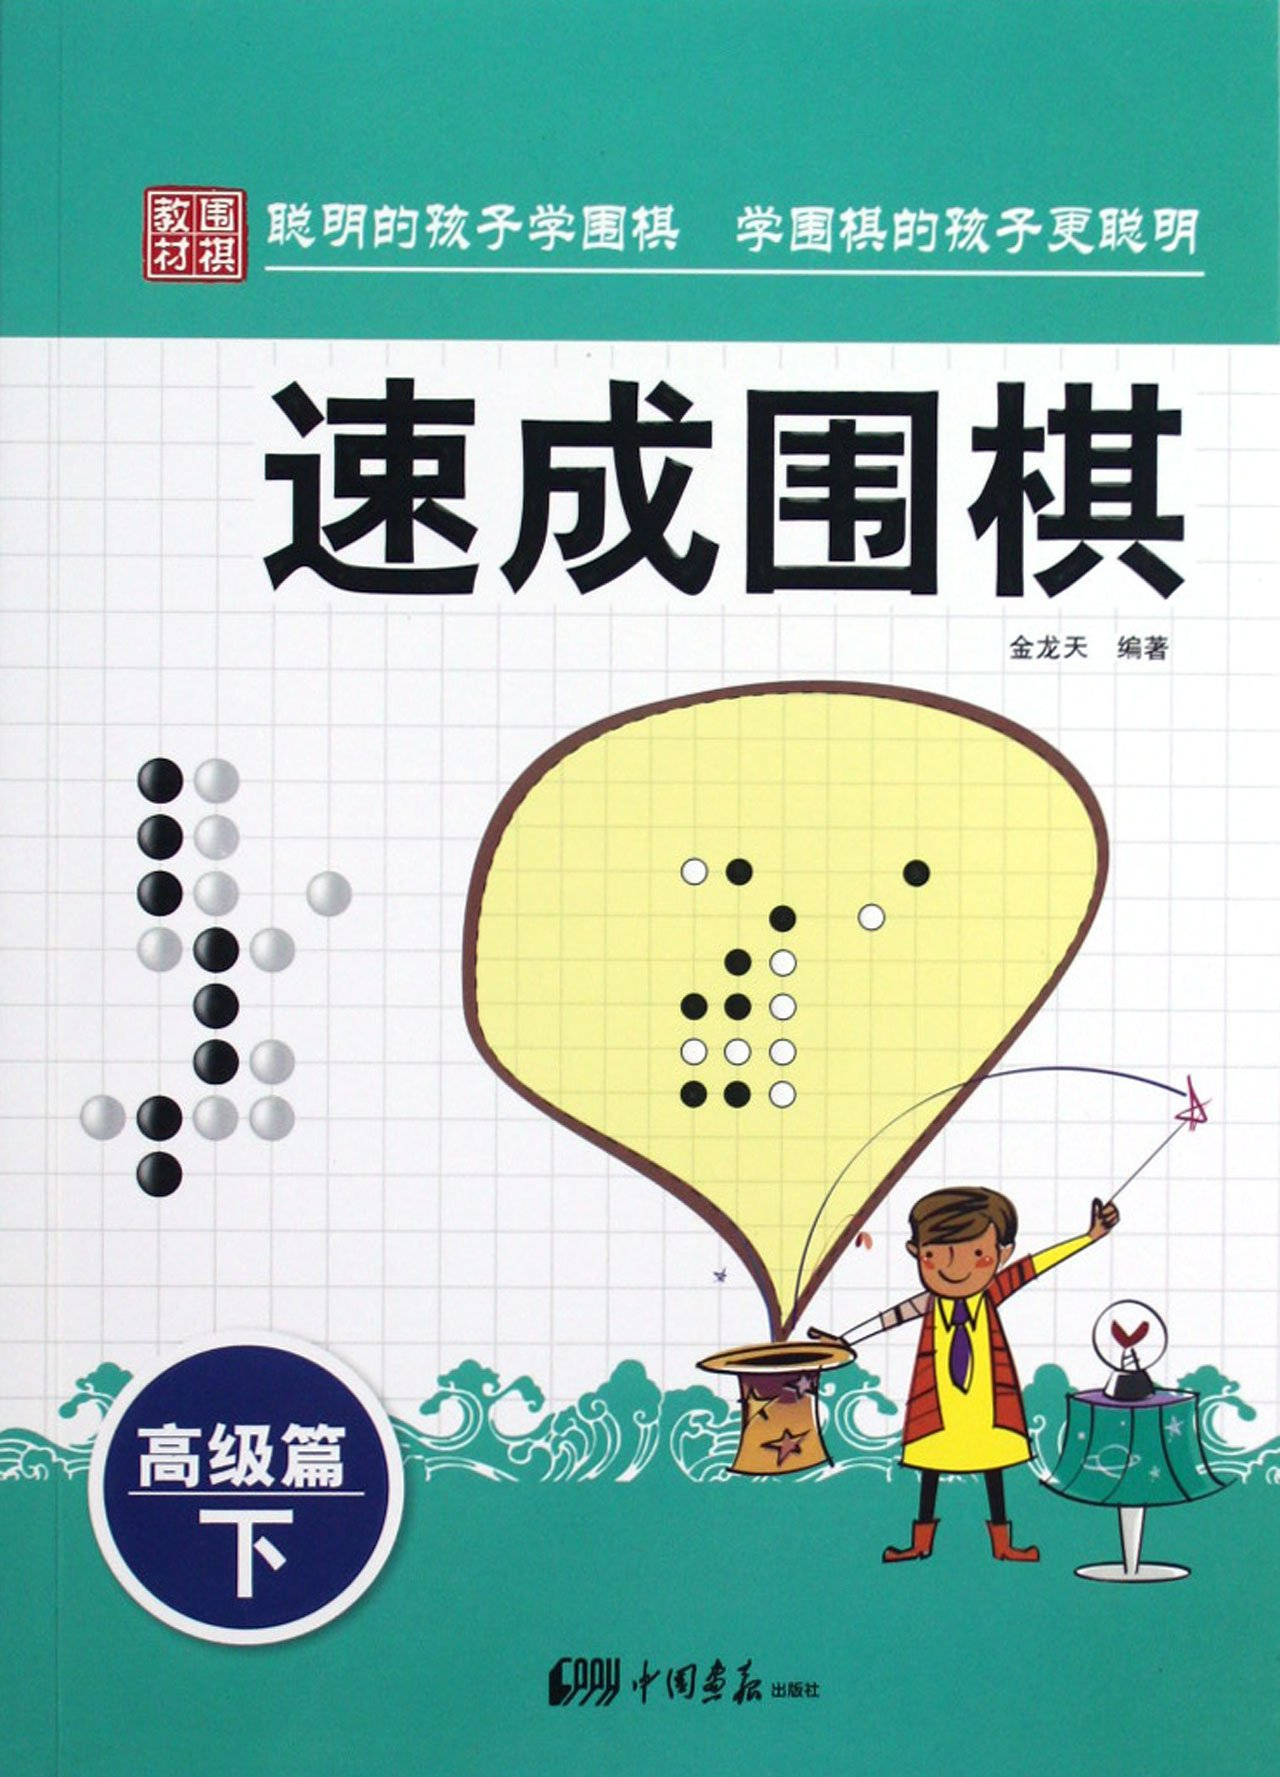 Download Quick Learn of Go-Advanced Level-Volume 3 (Chinese Edition) ebook